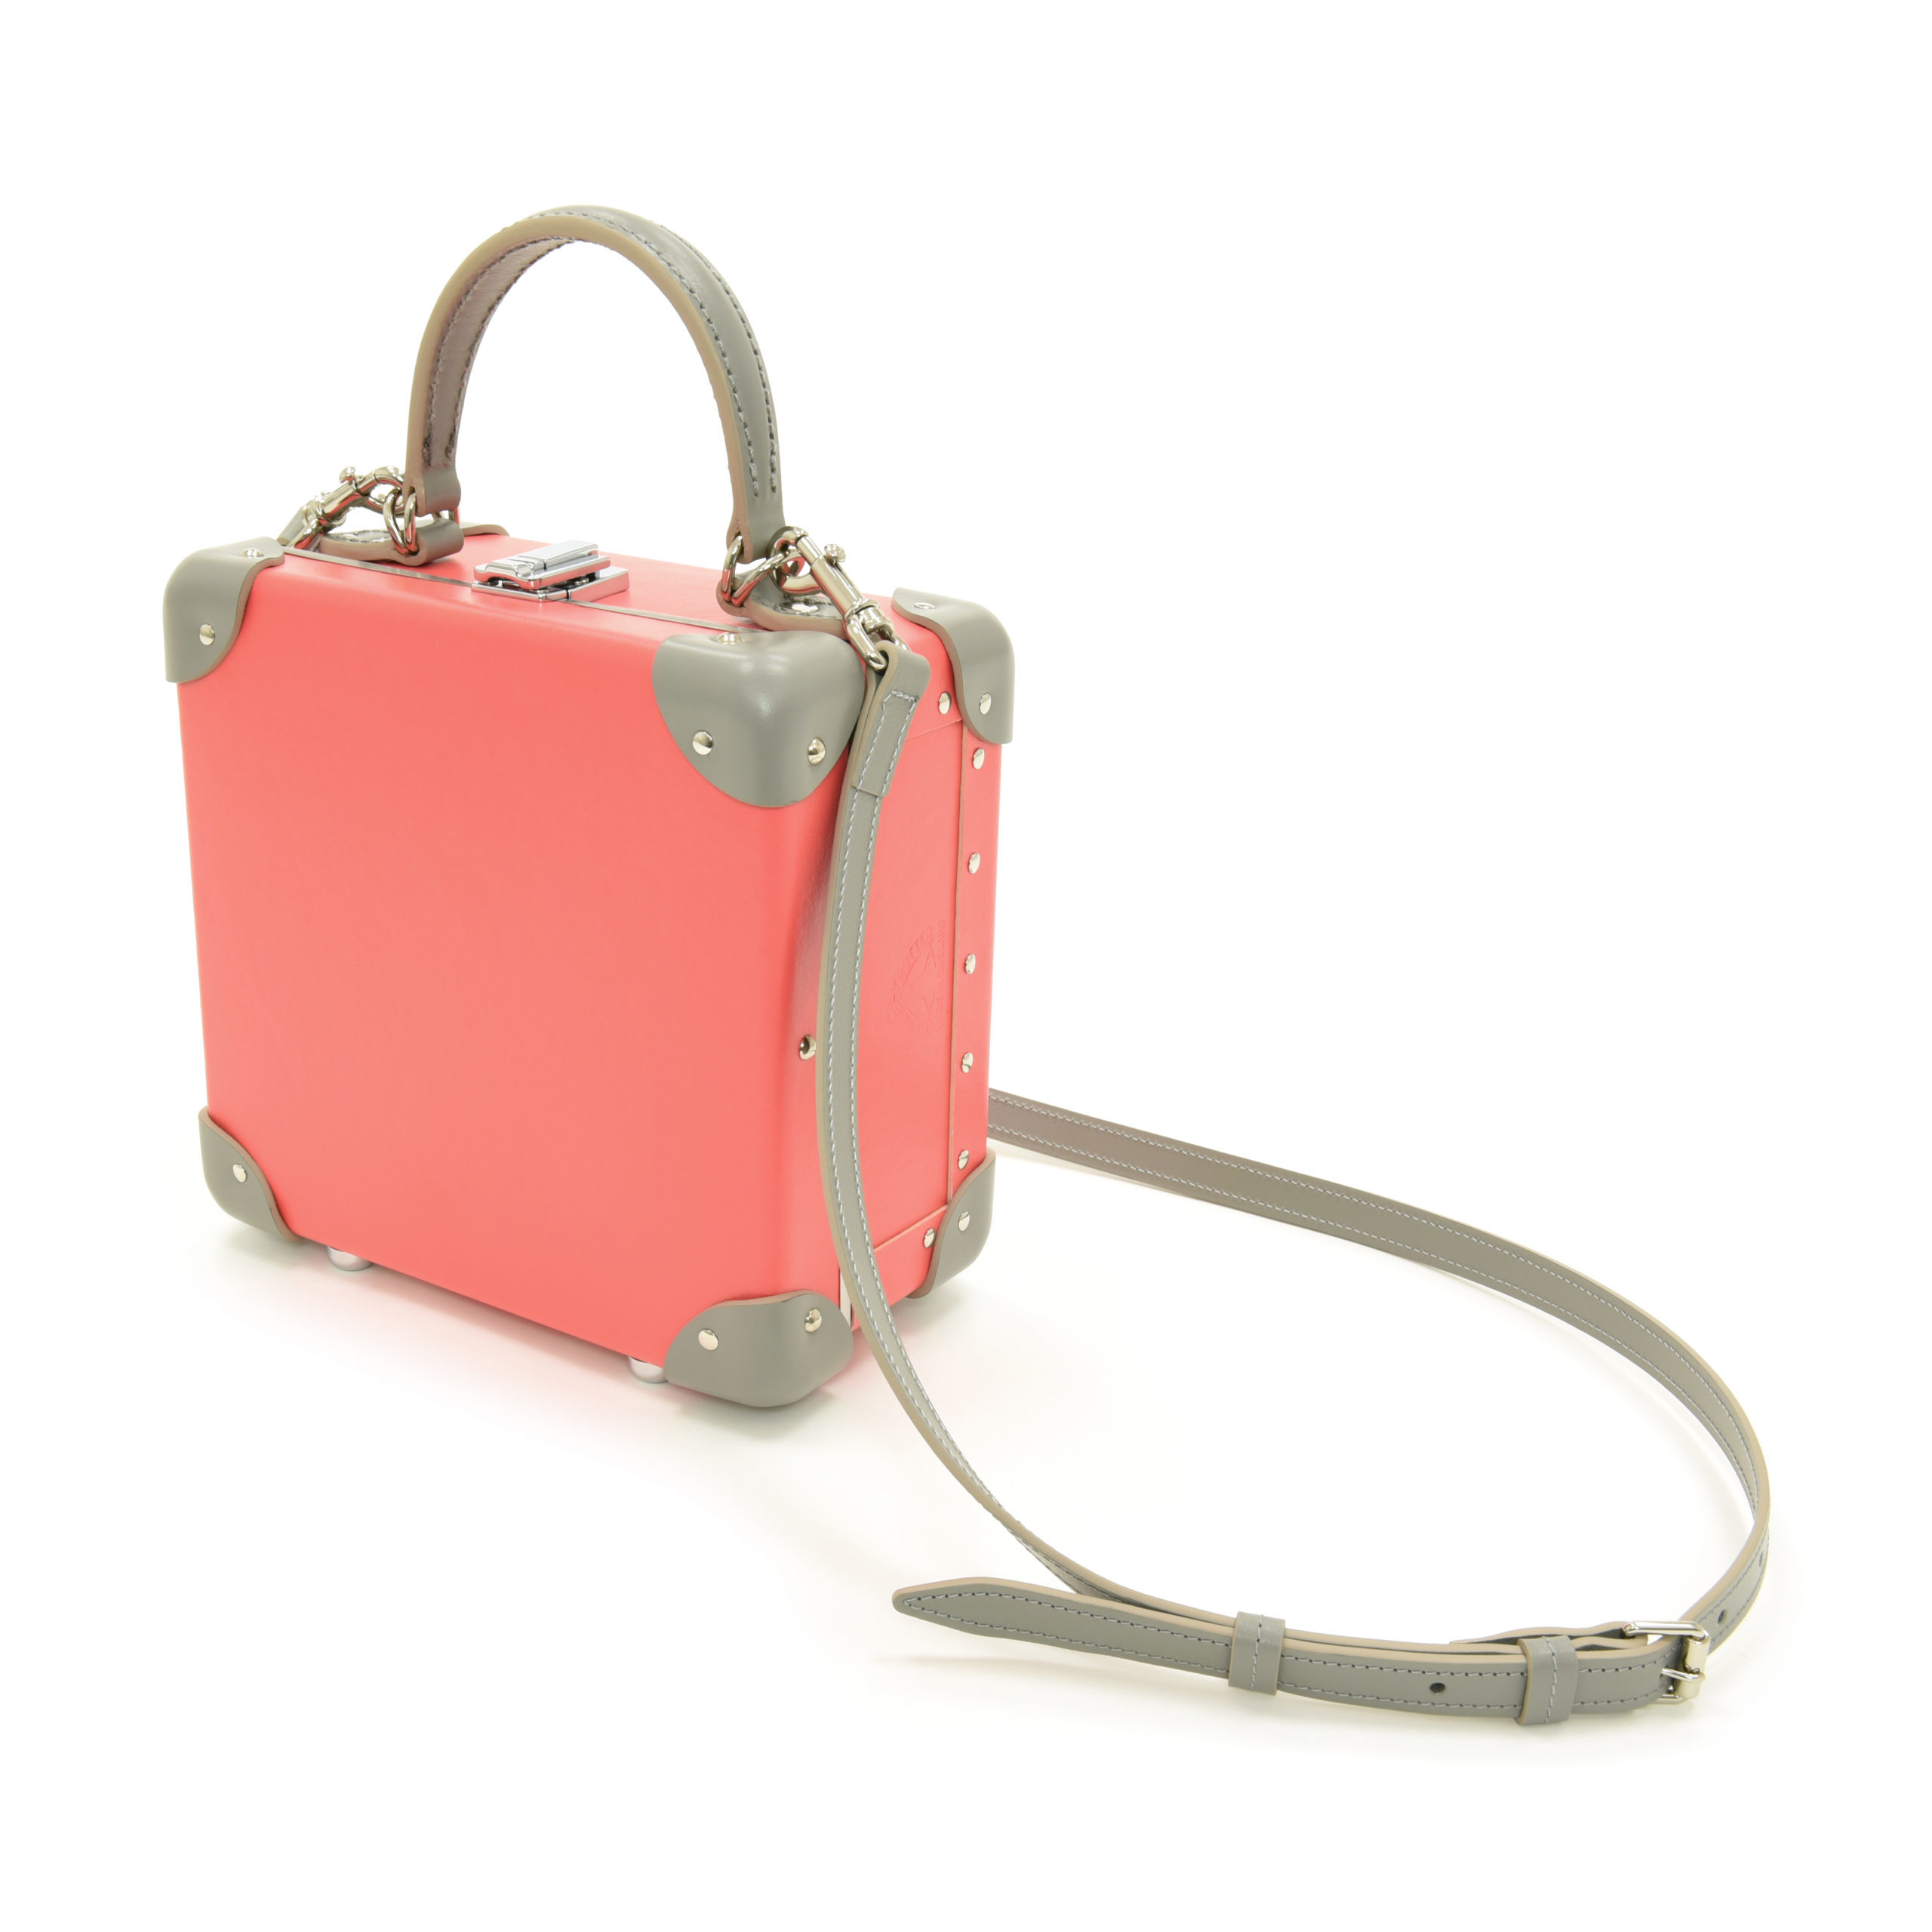 Flamingo_Steel_7mu_W.LEATHER-STRAP-scaled